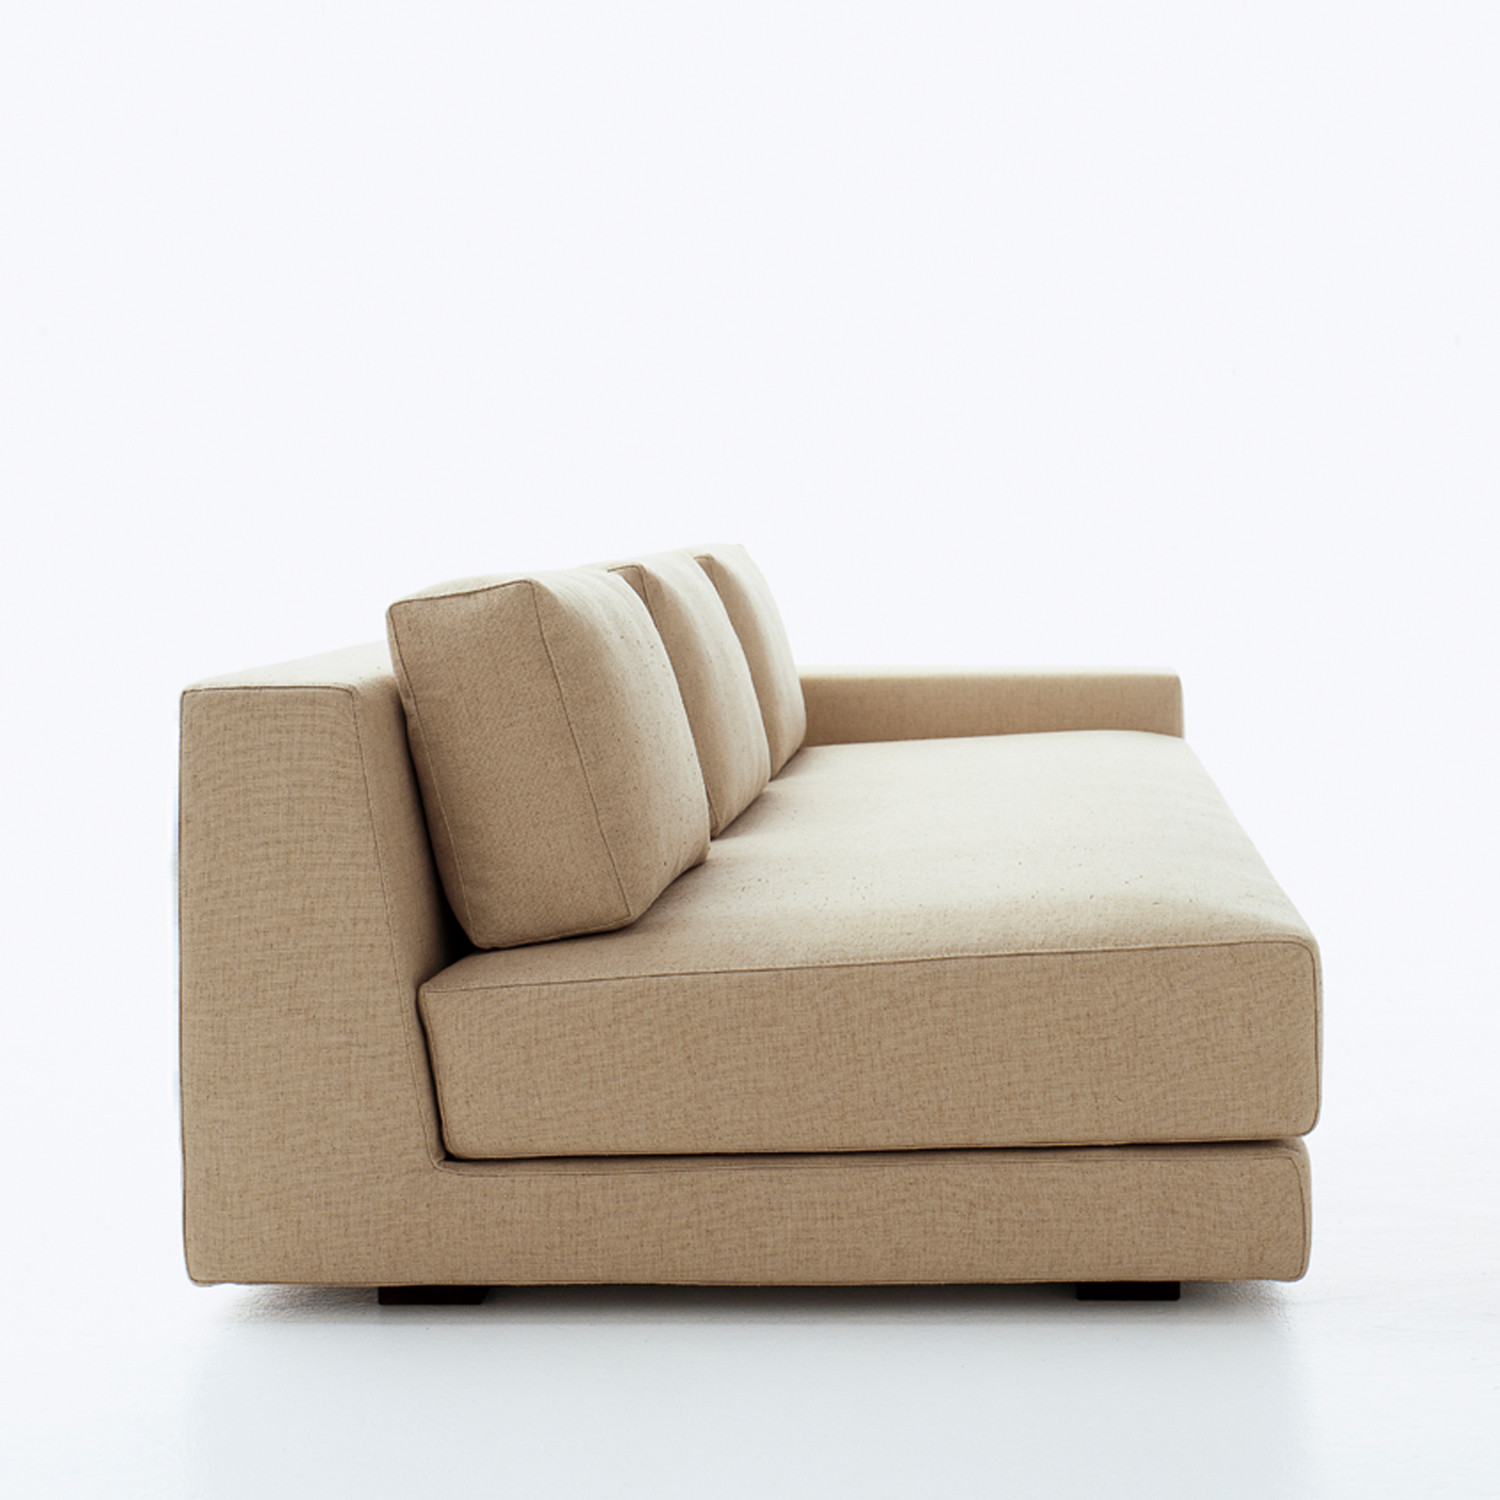 Idea-One Soft Seating